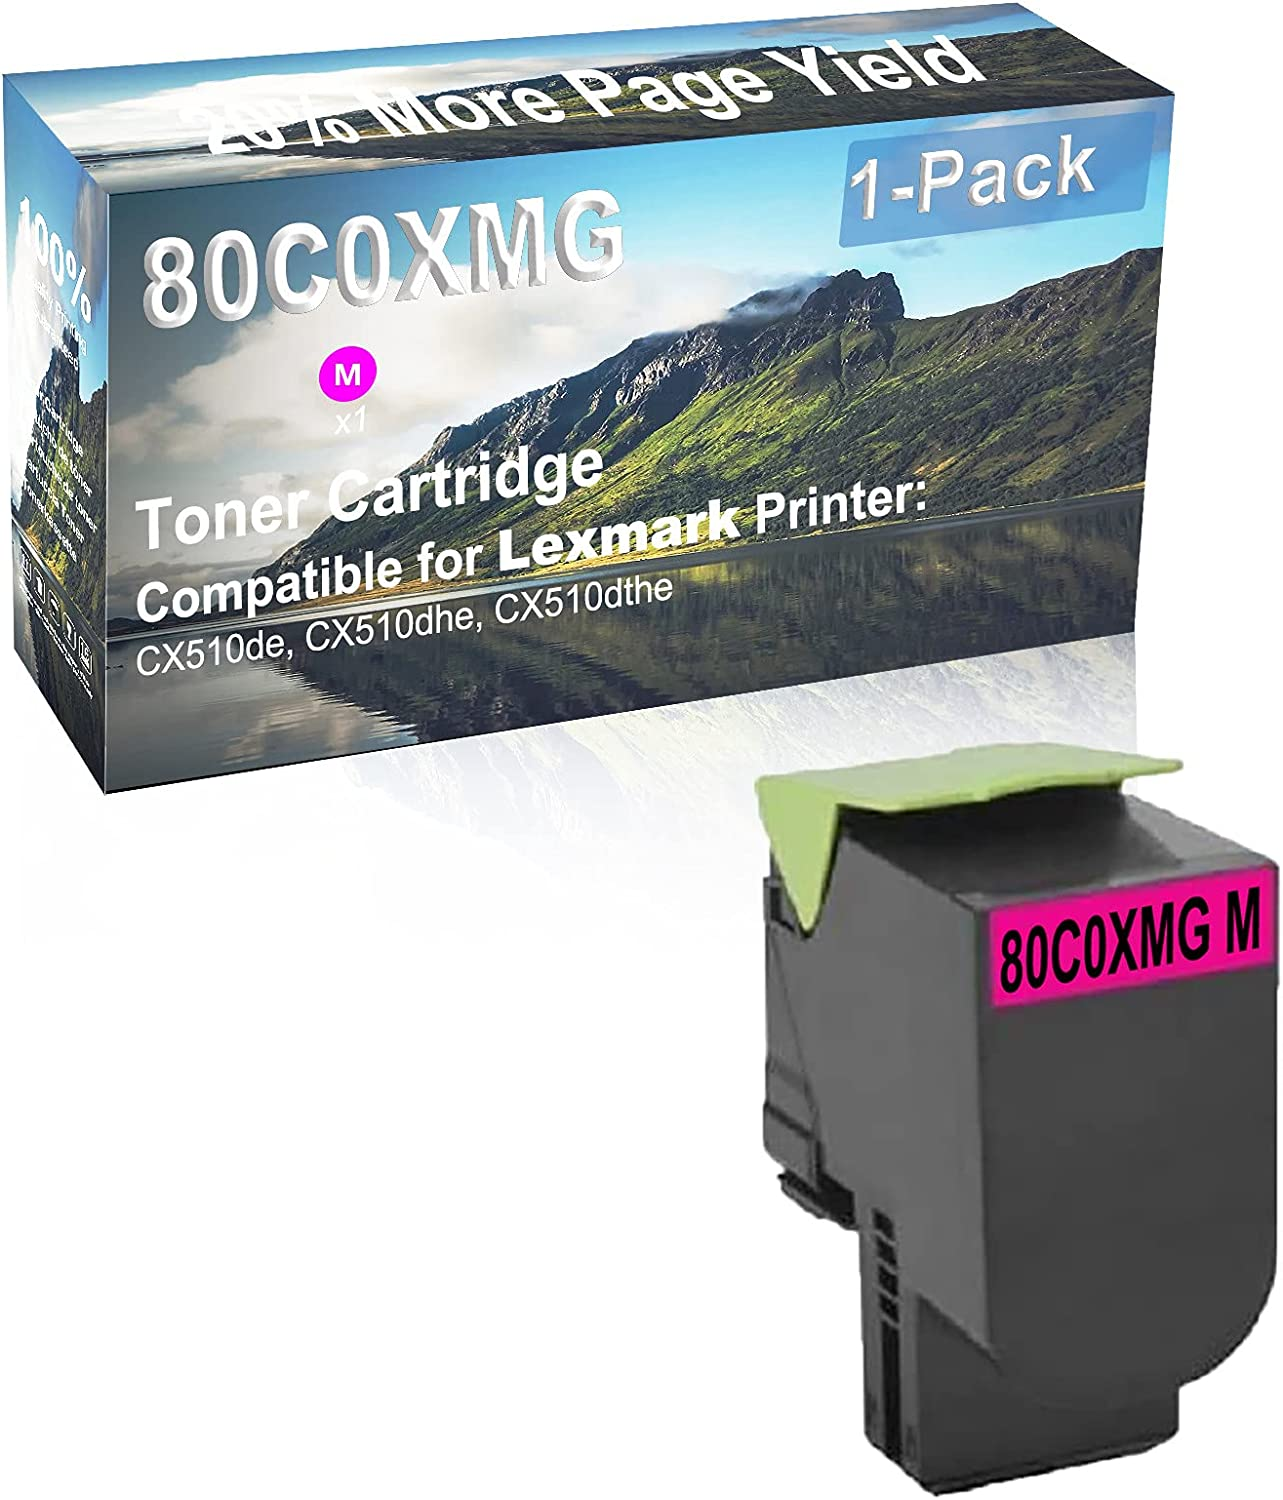 1-Pack (Magenta) Compatible High Capacity 80C0XMG Toner Cartridge Used for Lexmark CX510de, CX510dhe, CX510dthe Printer